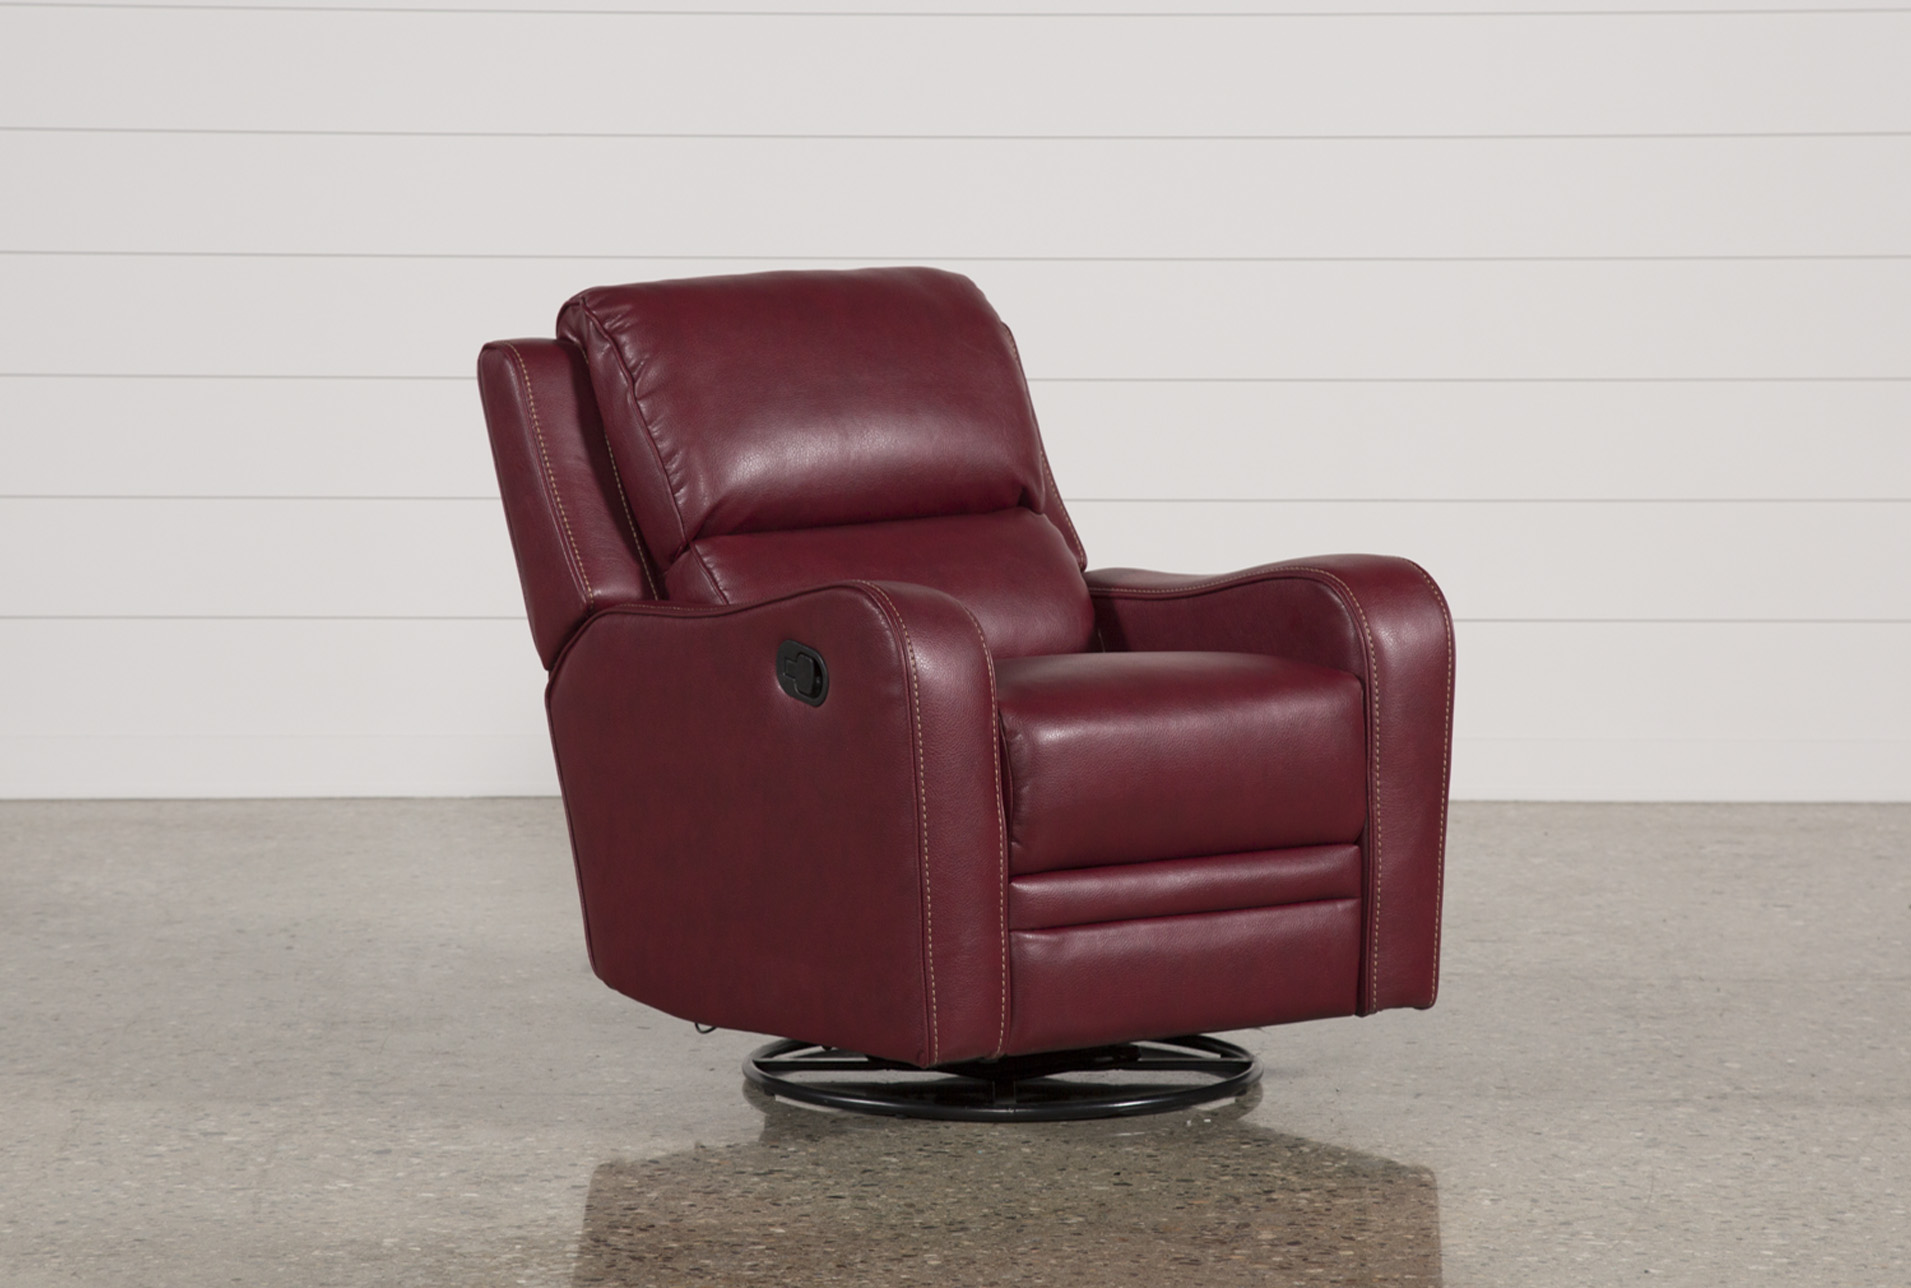 red recliner chairs dining room chair with arms covers scorpio swivel glider living spaces qty 1 has been successfully added to your cart